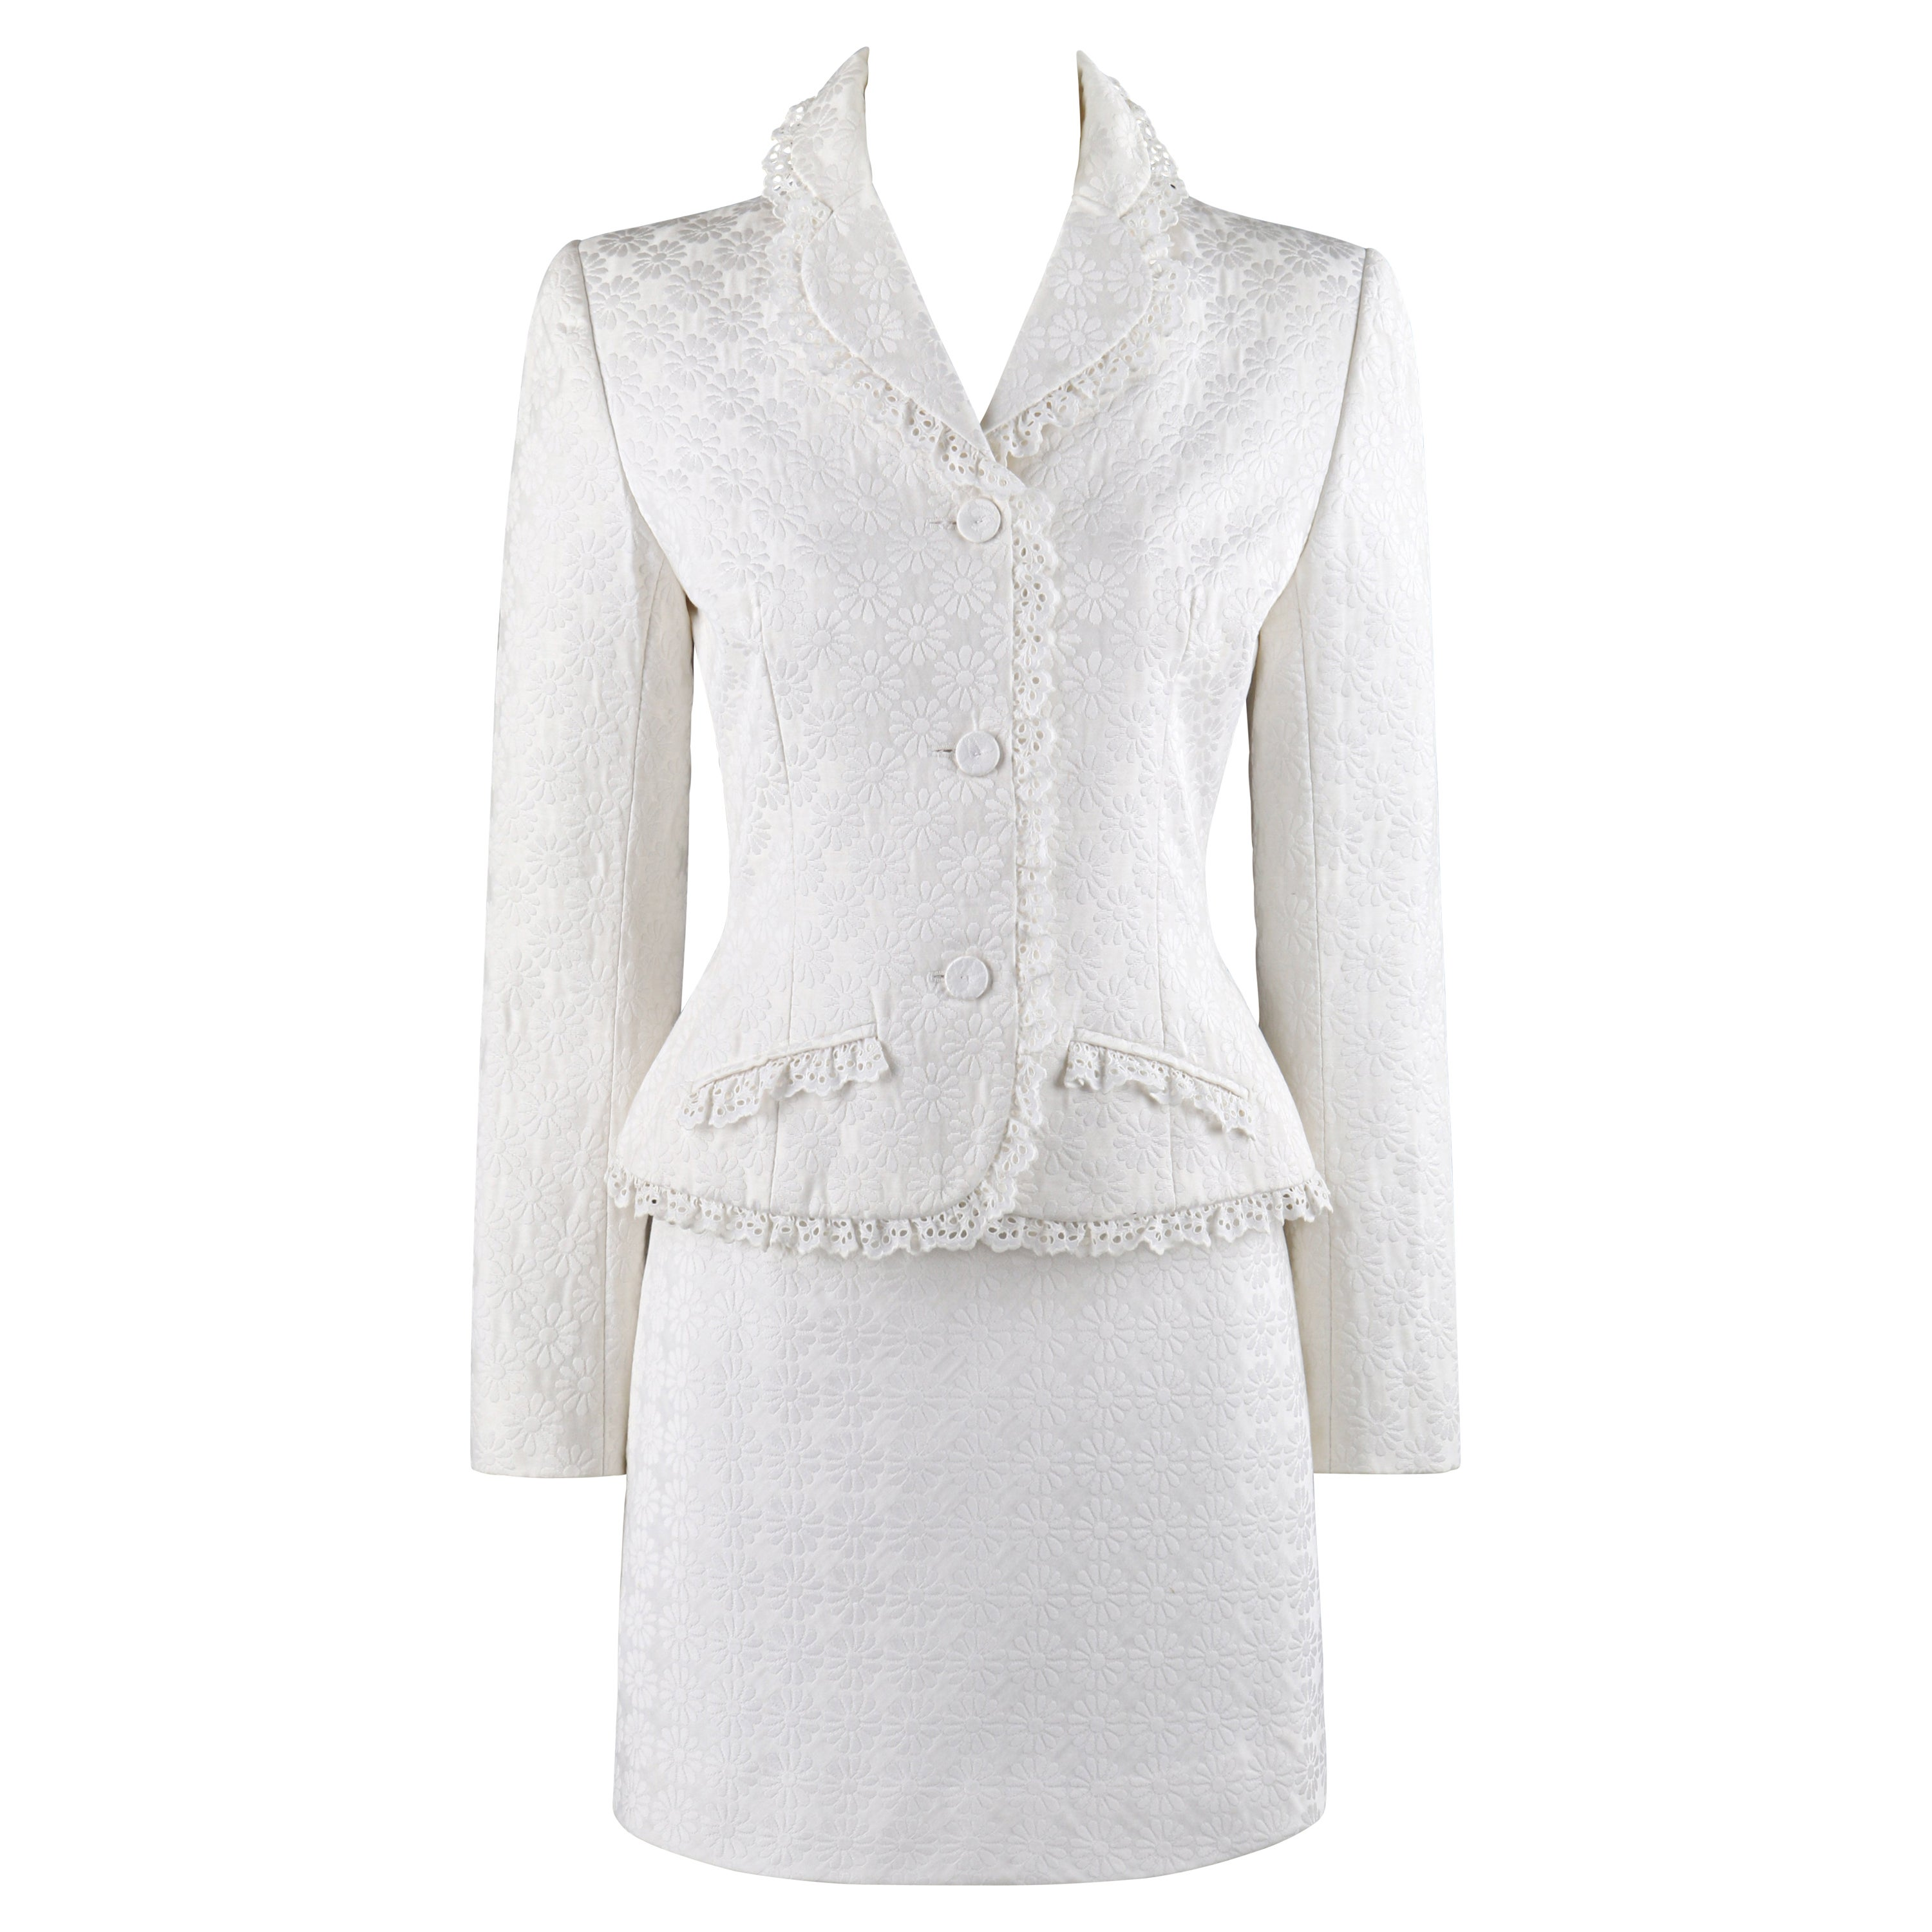 GIVENCHY A/W 1996 JOHN GALLIANO White Floral Brocade Lace Skirt Suit Blazer Set